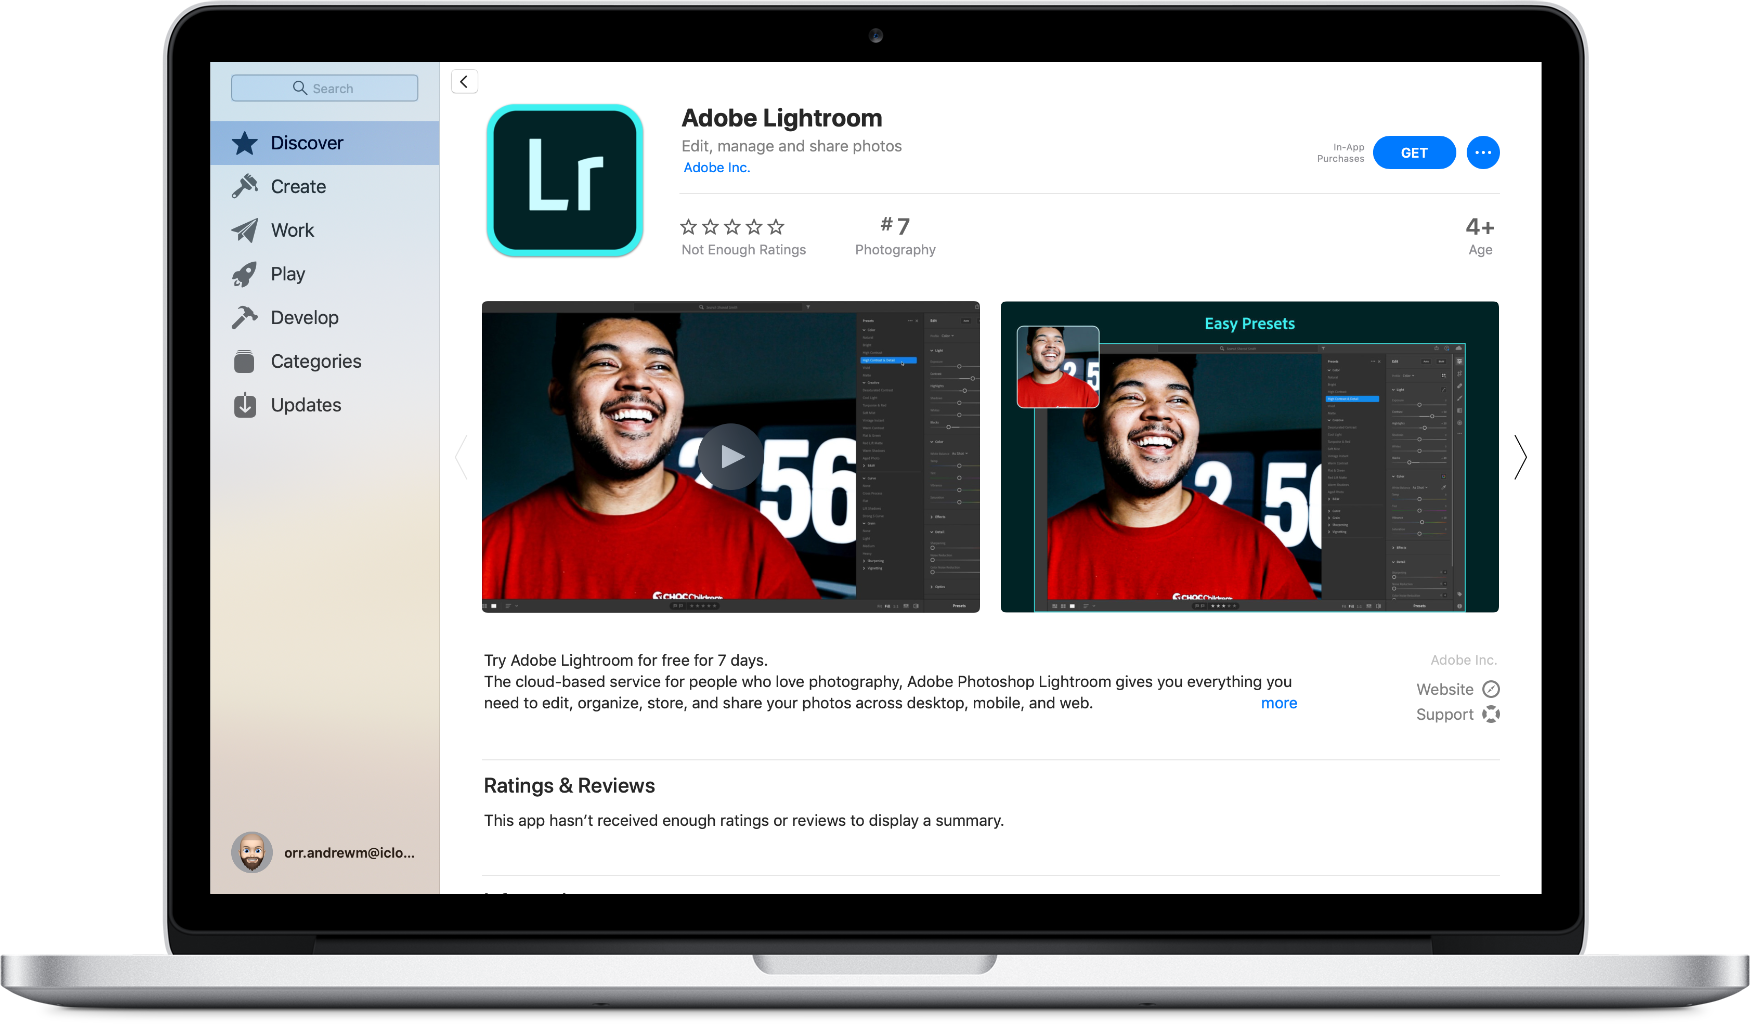 Adobe Lightroom in mac app store